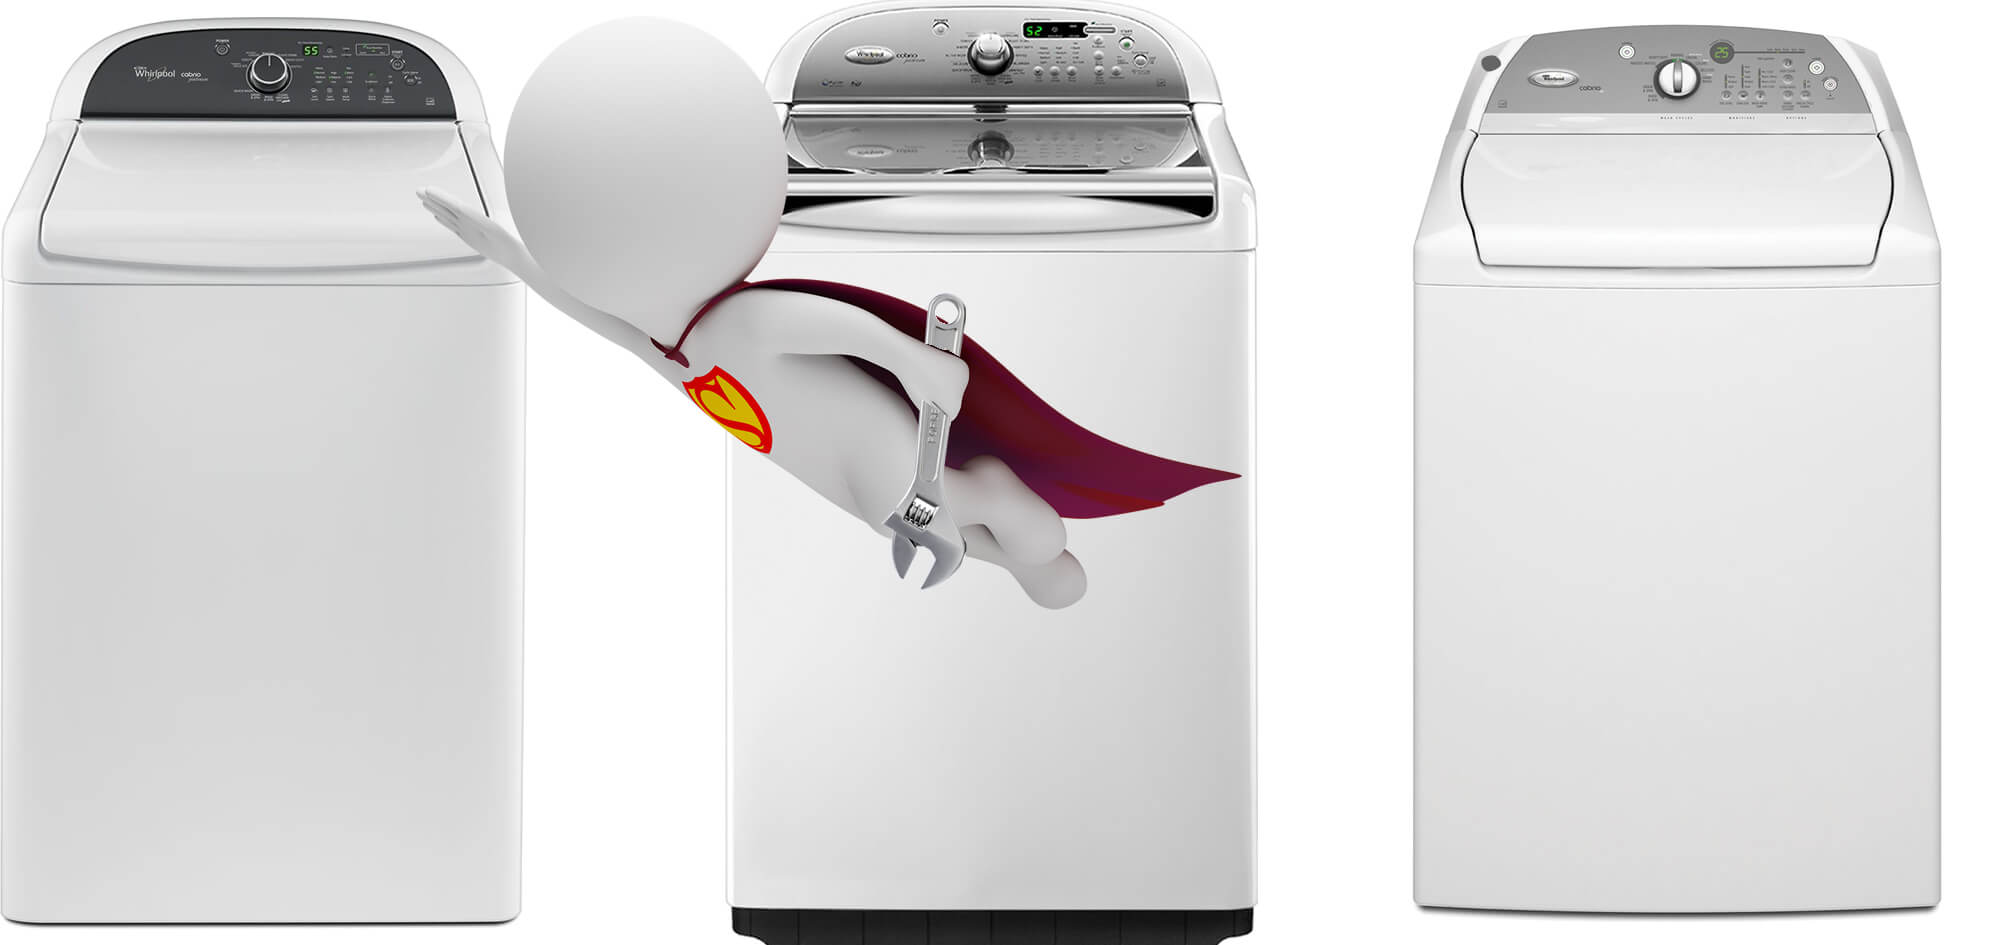 hight resolution of whirlpool cabrio washer repair guide applianceassistant com applianceassistant com